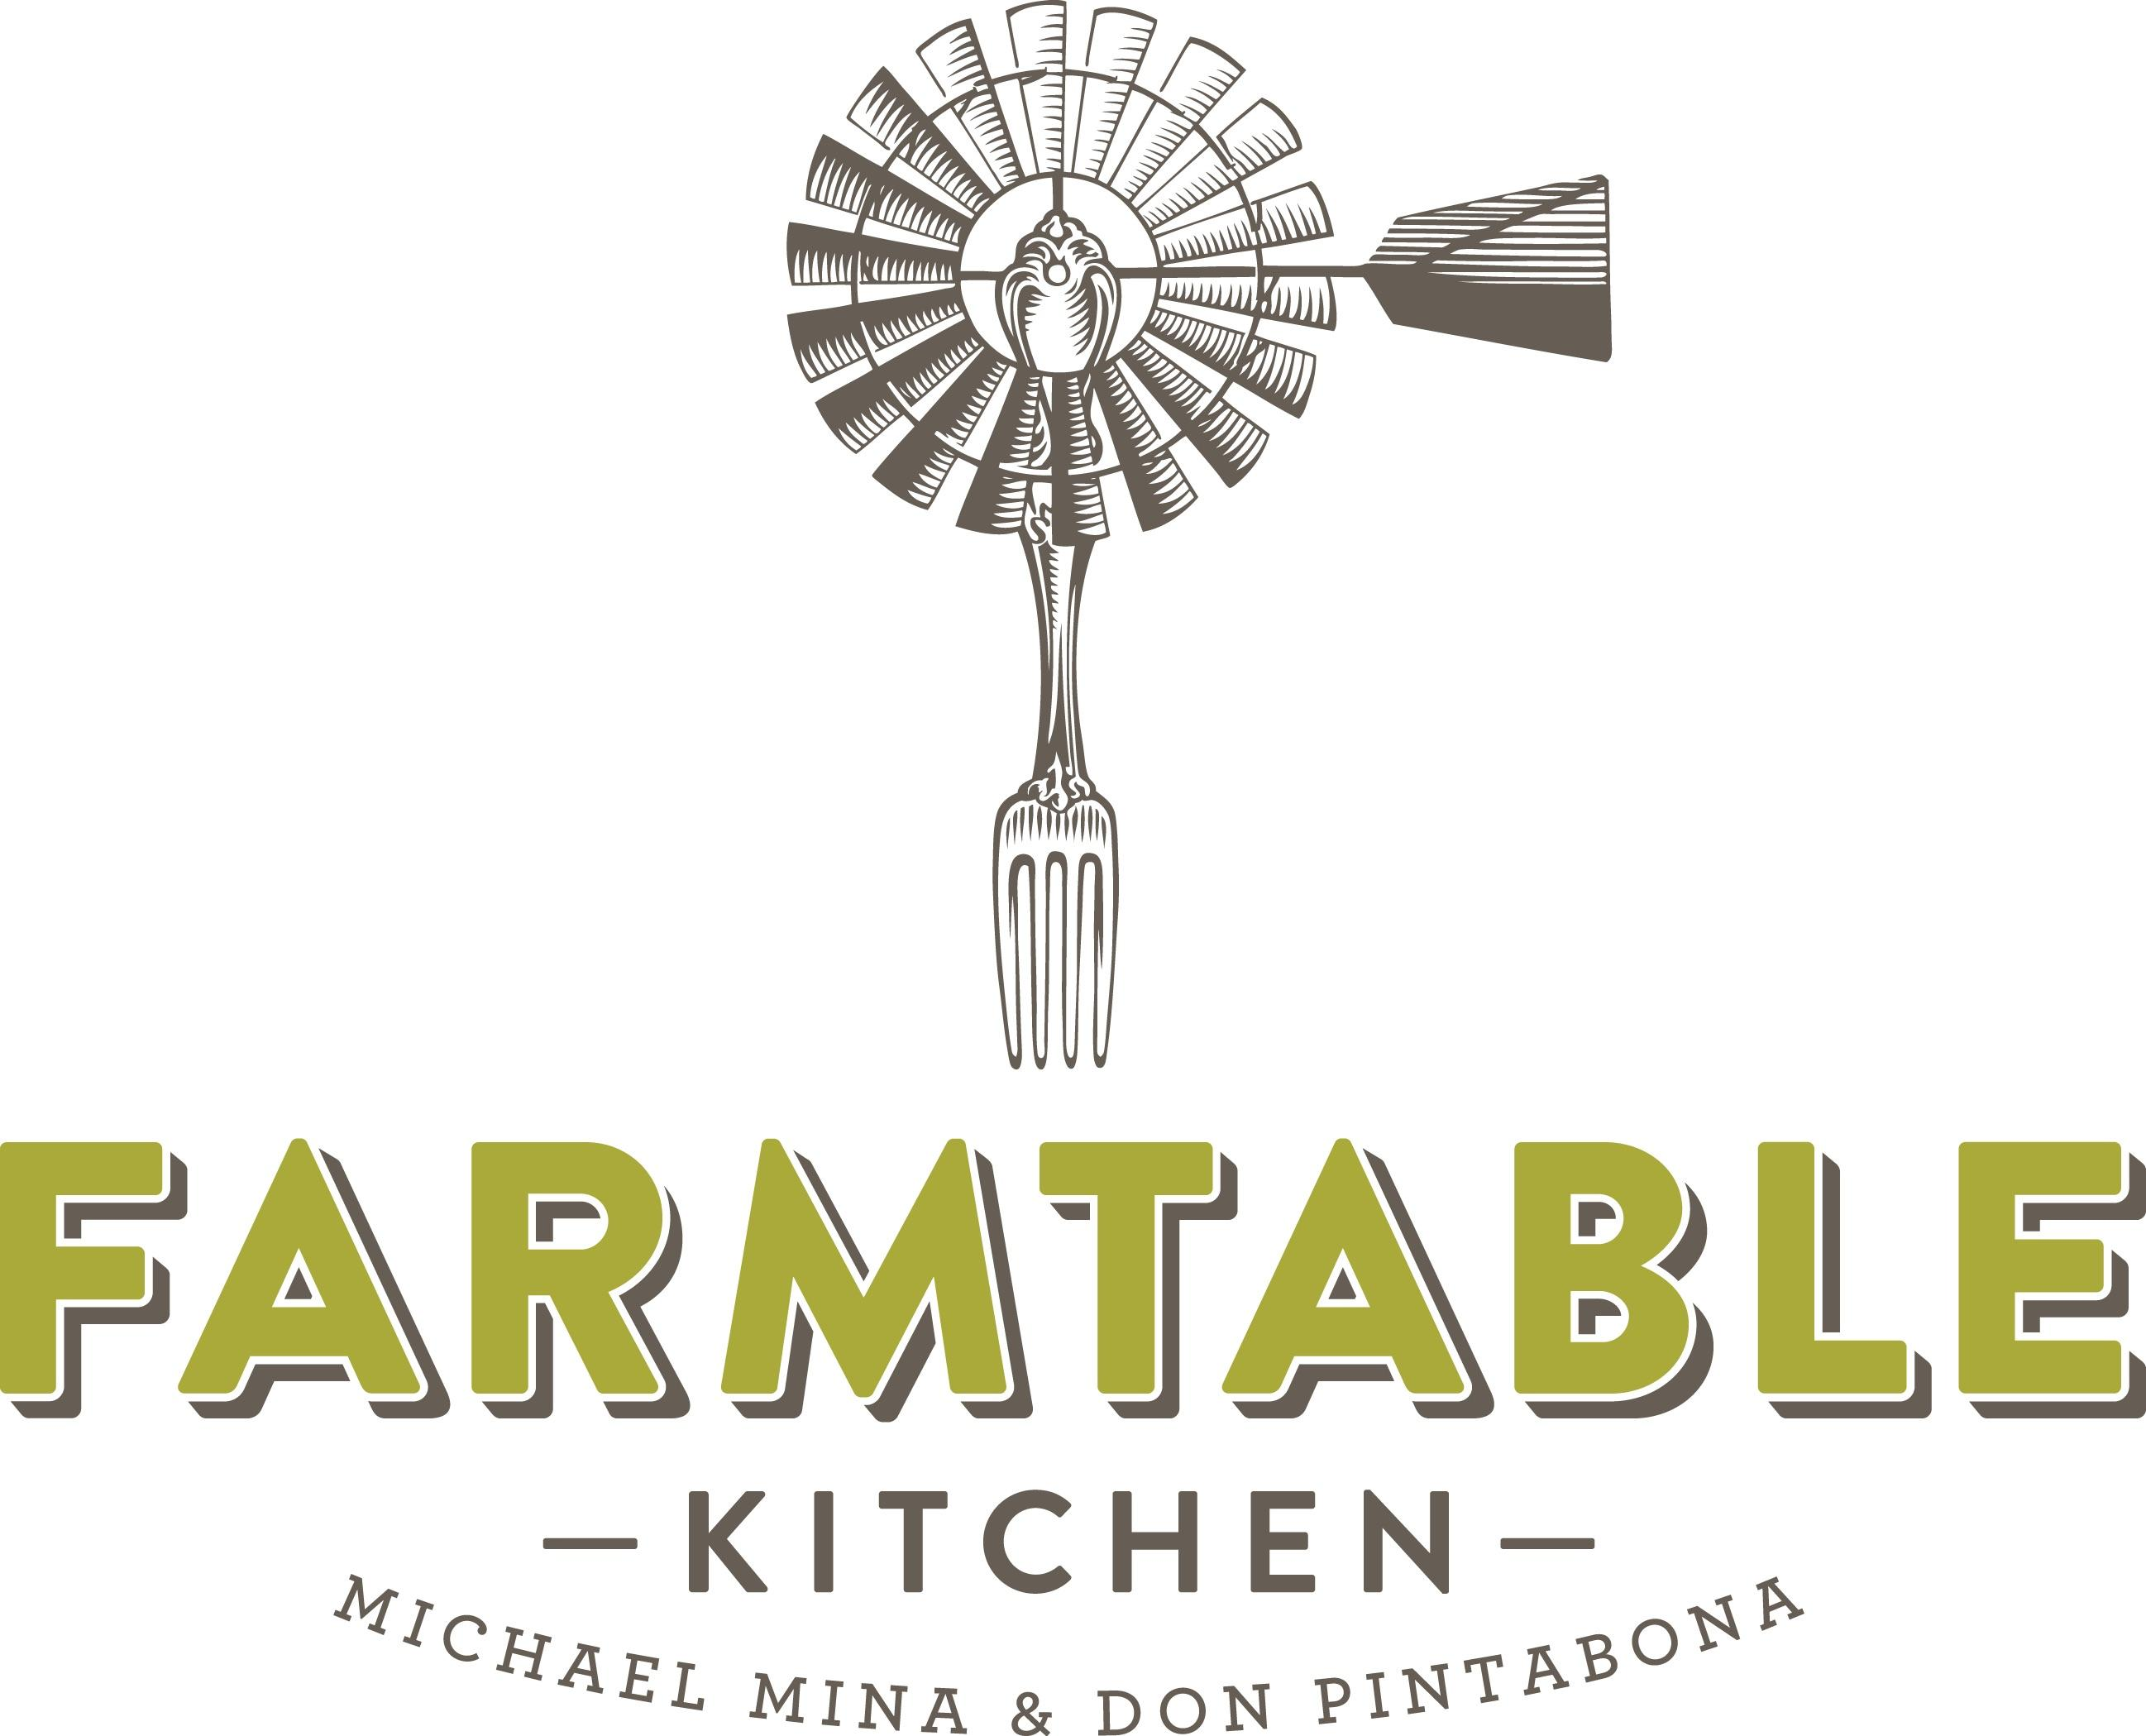 FarmTable Kitchen logo